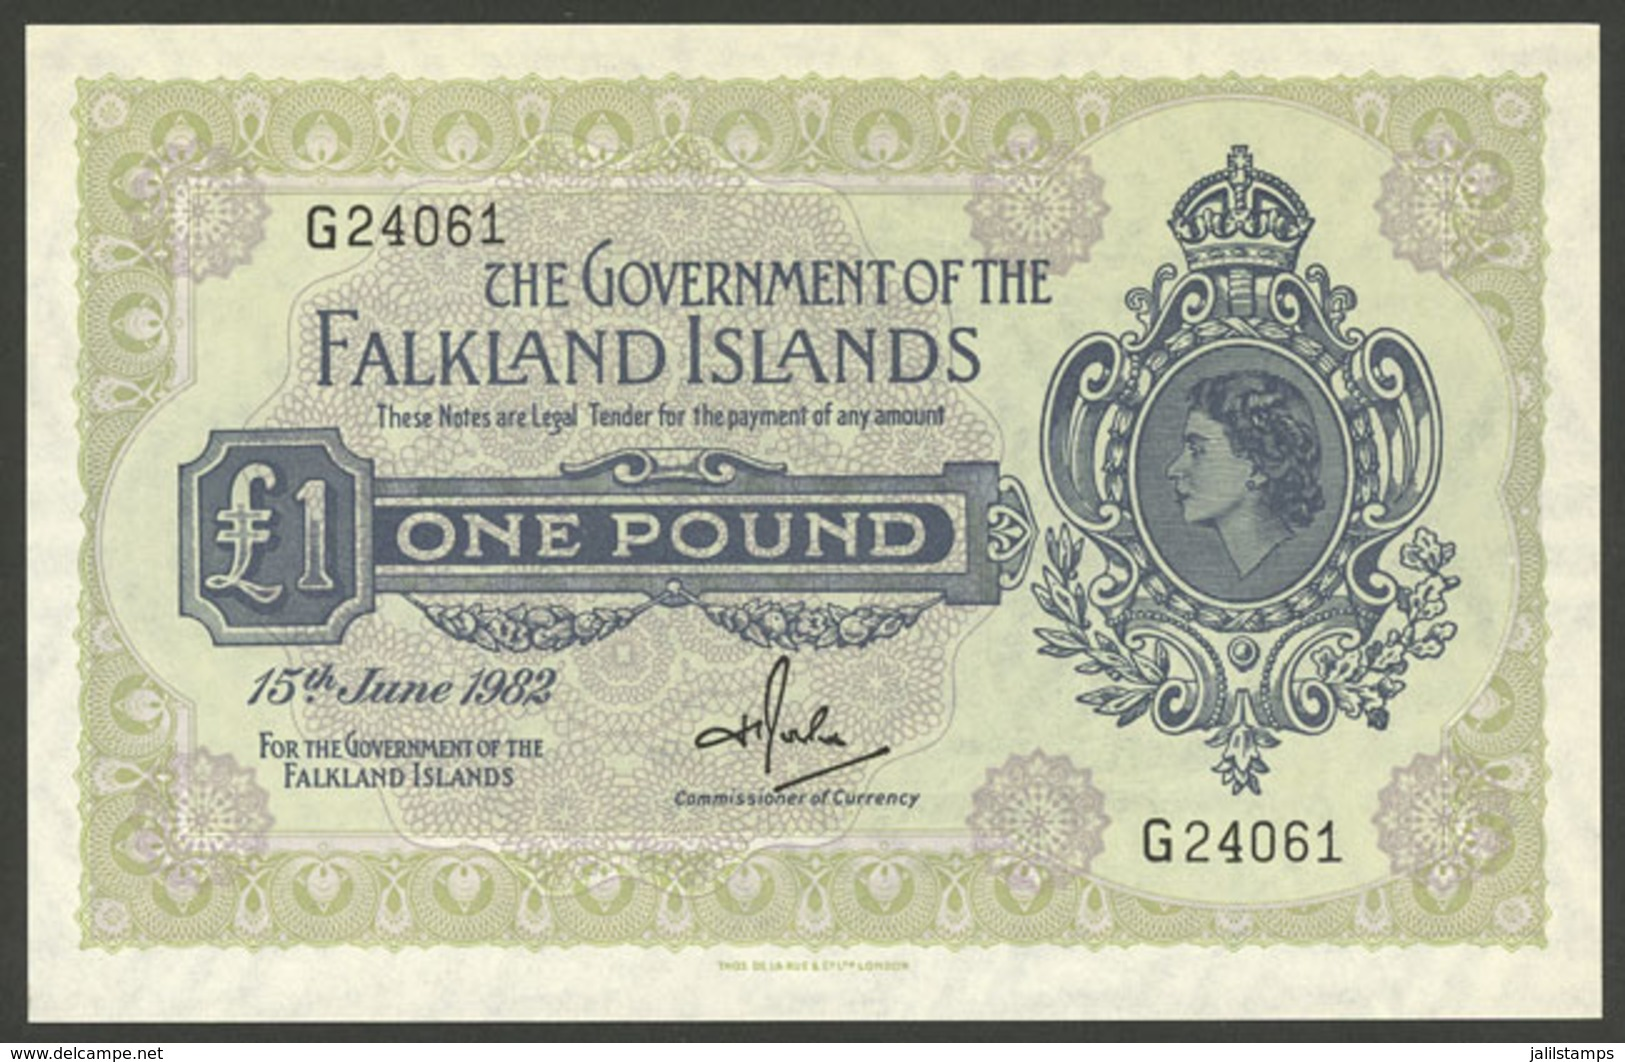 FALKLAND ISLANDS/MALVINAS: Banknote Of 1 Pound Of The Year 1982, Mint Unused, Excellent Quality! - Falkland